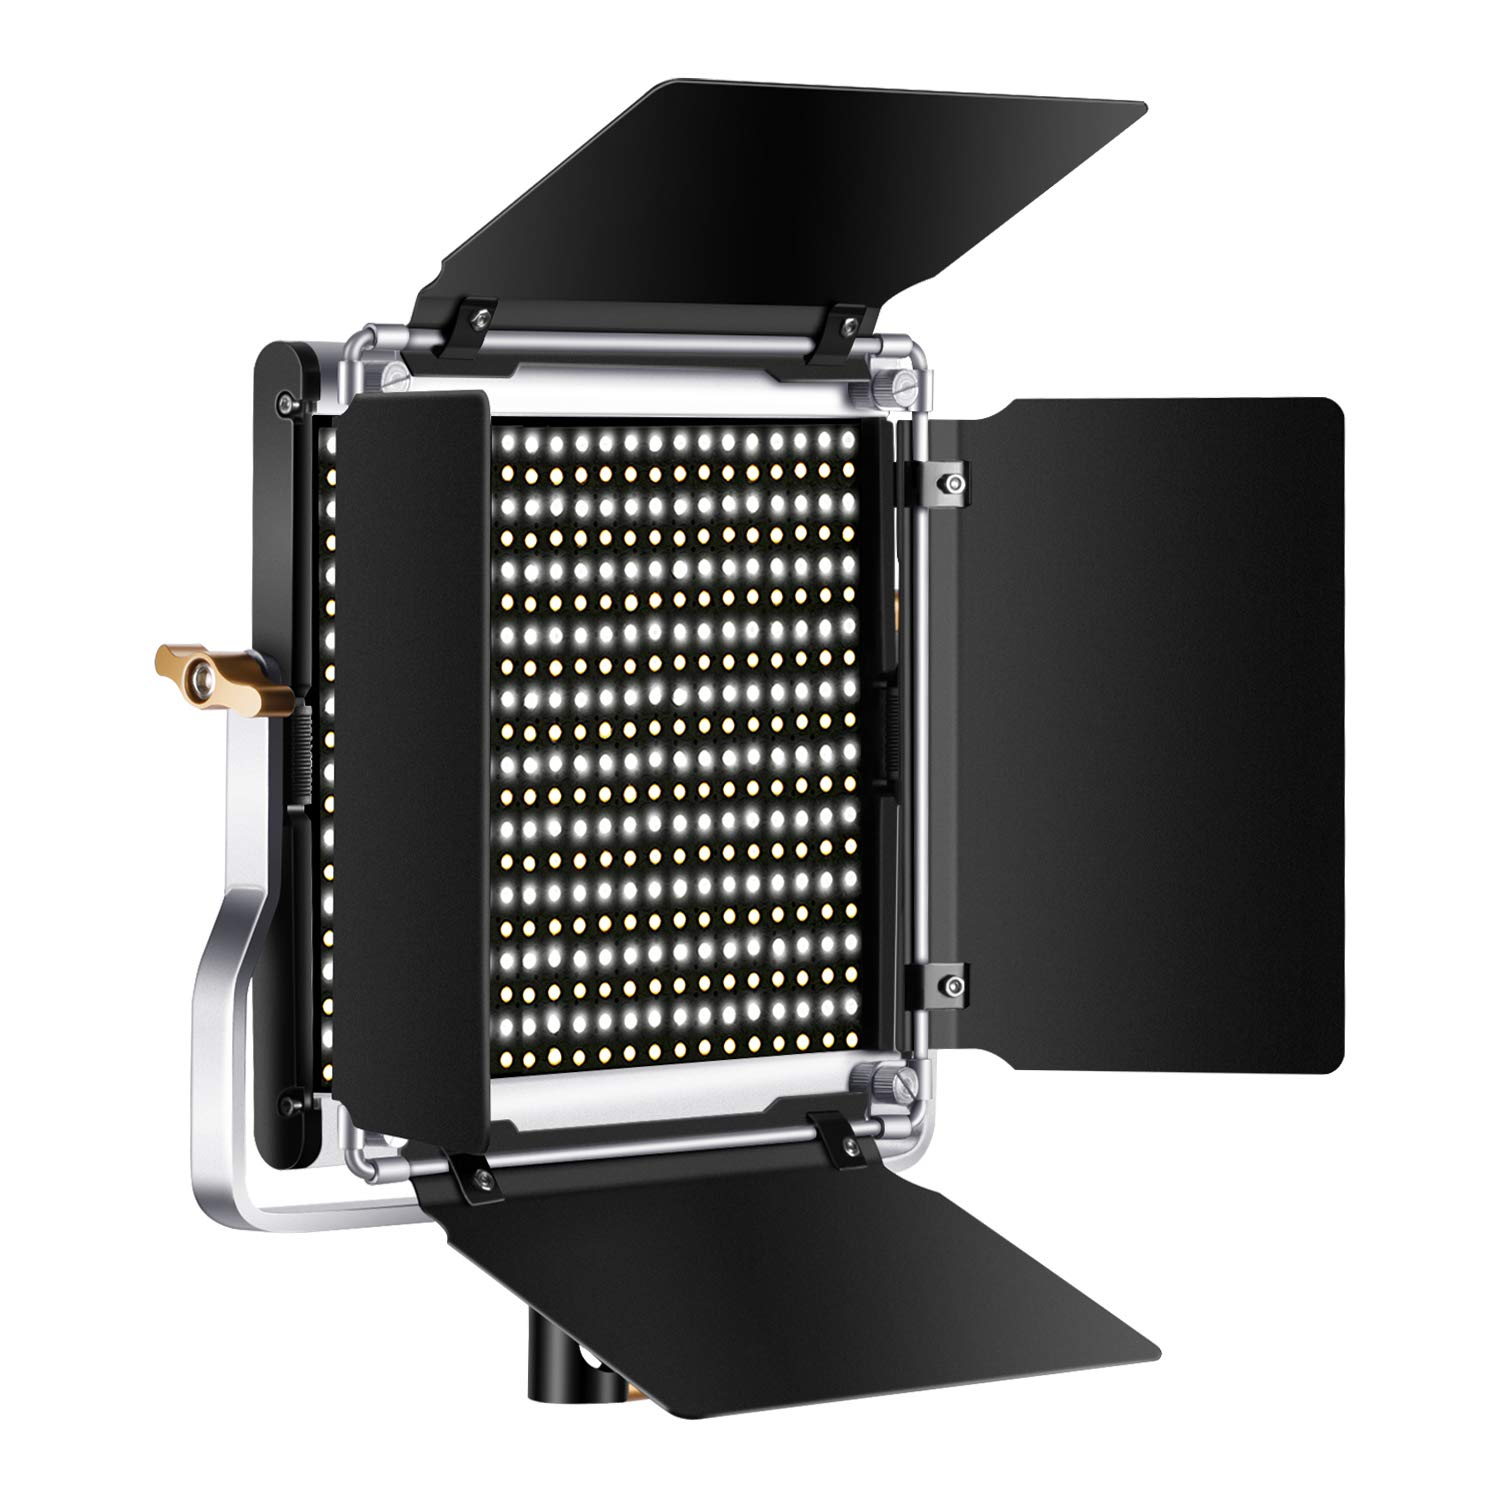 Neewer Dimmable Bi-Color 500 LED Video Light with Barndoor,U Bracket and Carry Bag for Studio,YouTube Outdoor Video Photography,Durable Metal Frame/3200-5600K/CRI 96+/Upgraded Cooling Design(Silver) by Neewer